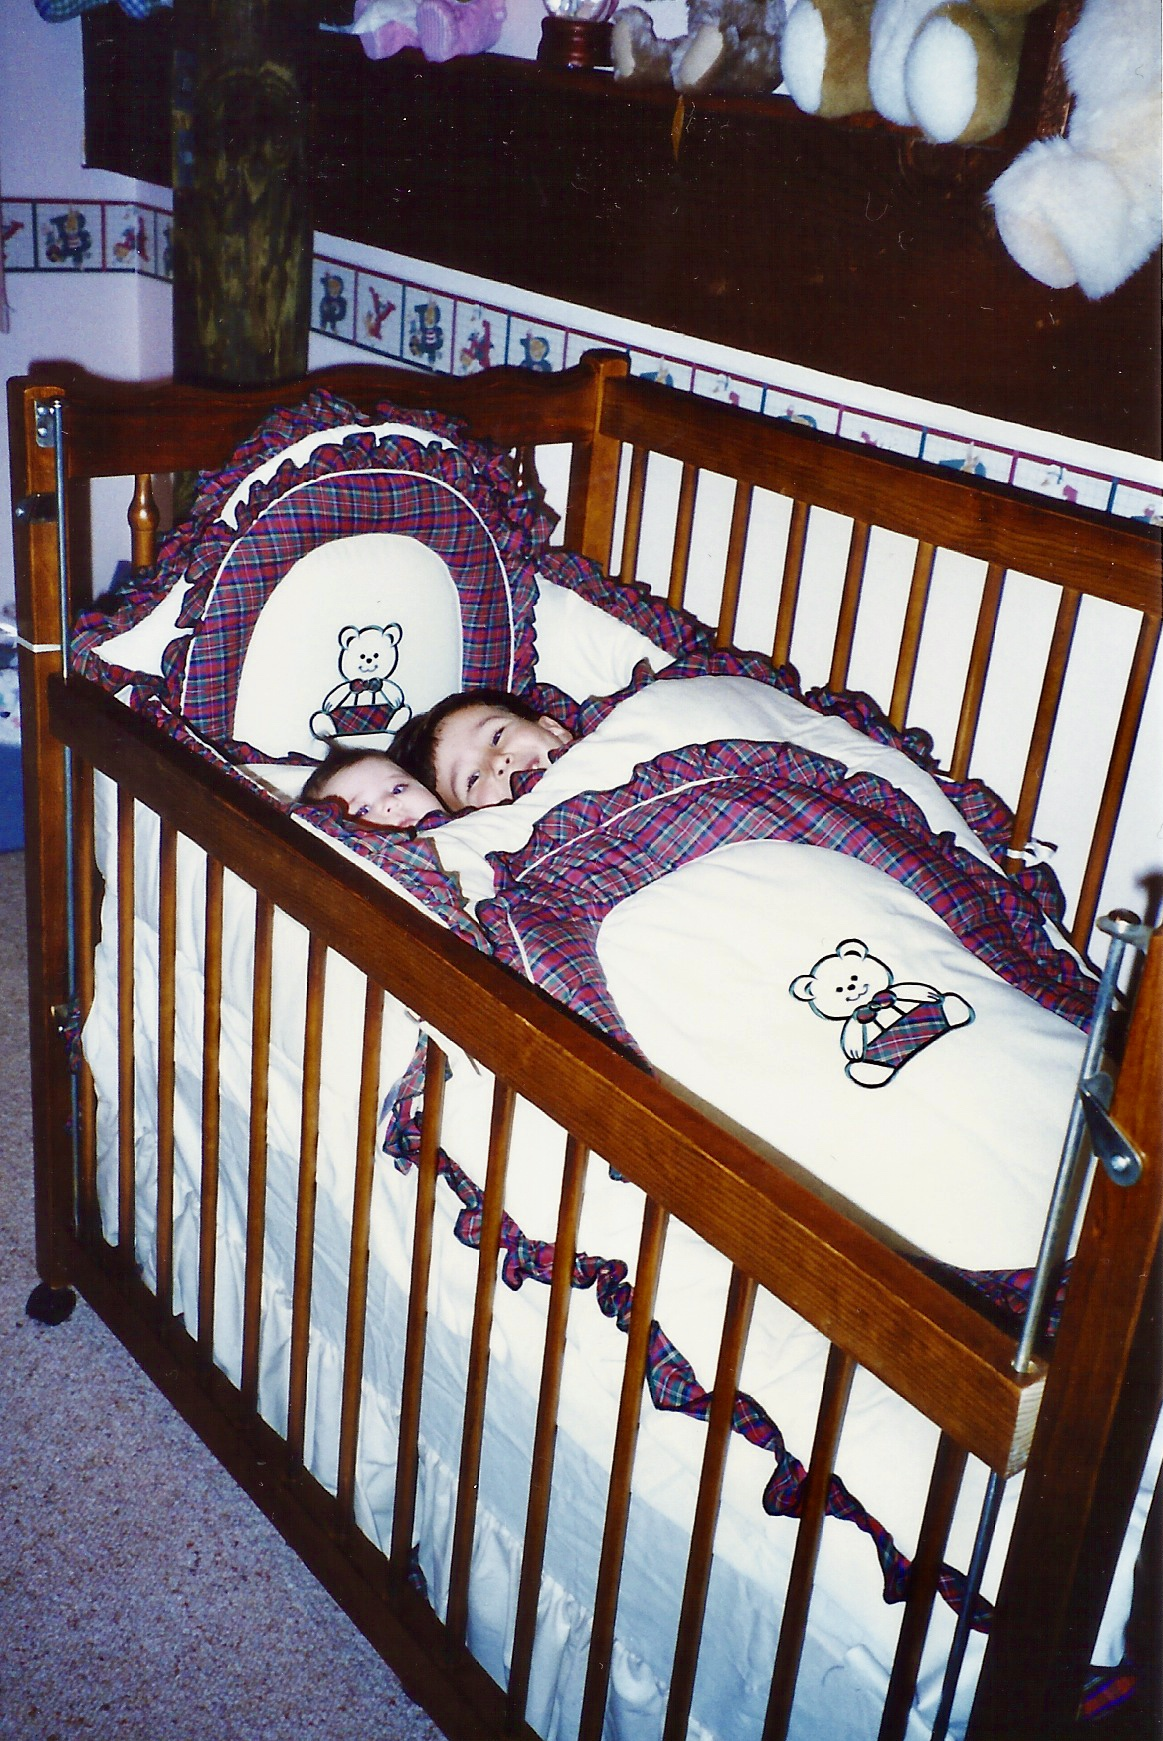 Me and my sister when she was a baby, sharing her cot